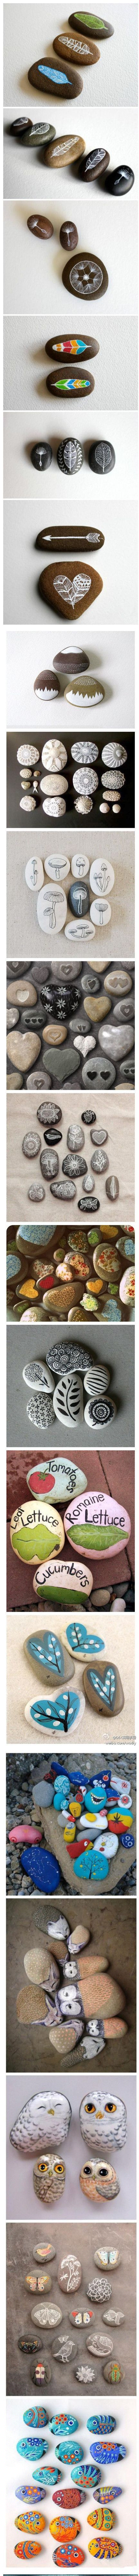 Creative designs, great idea for a simple gift